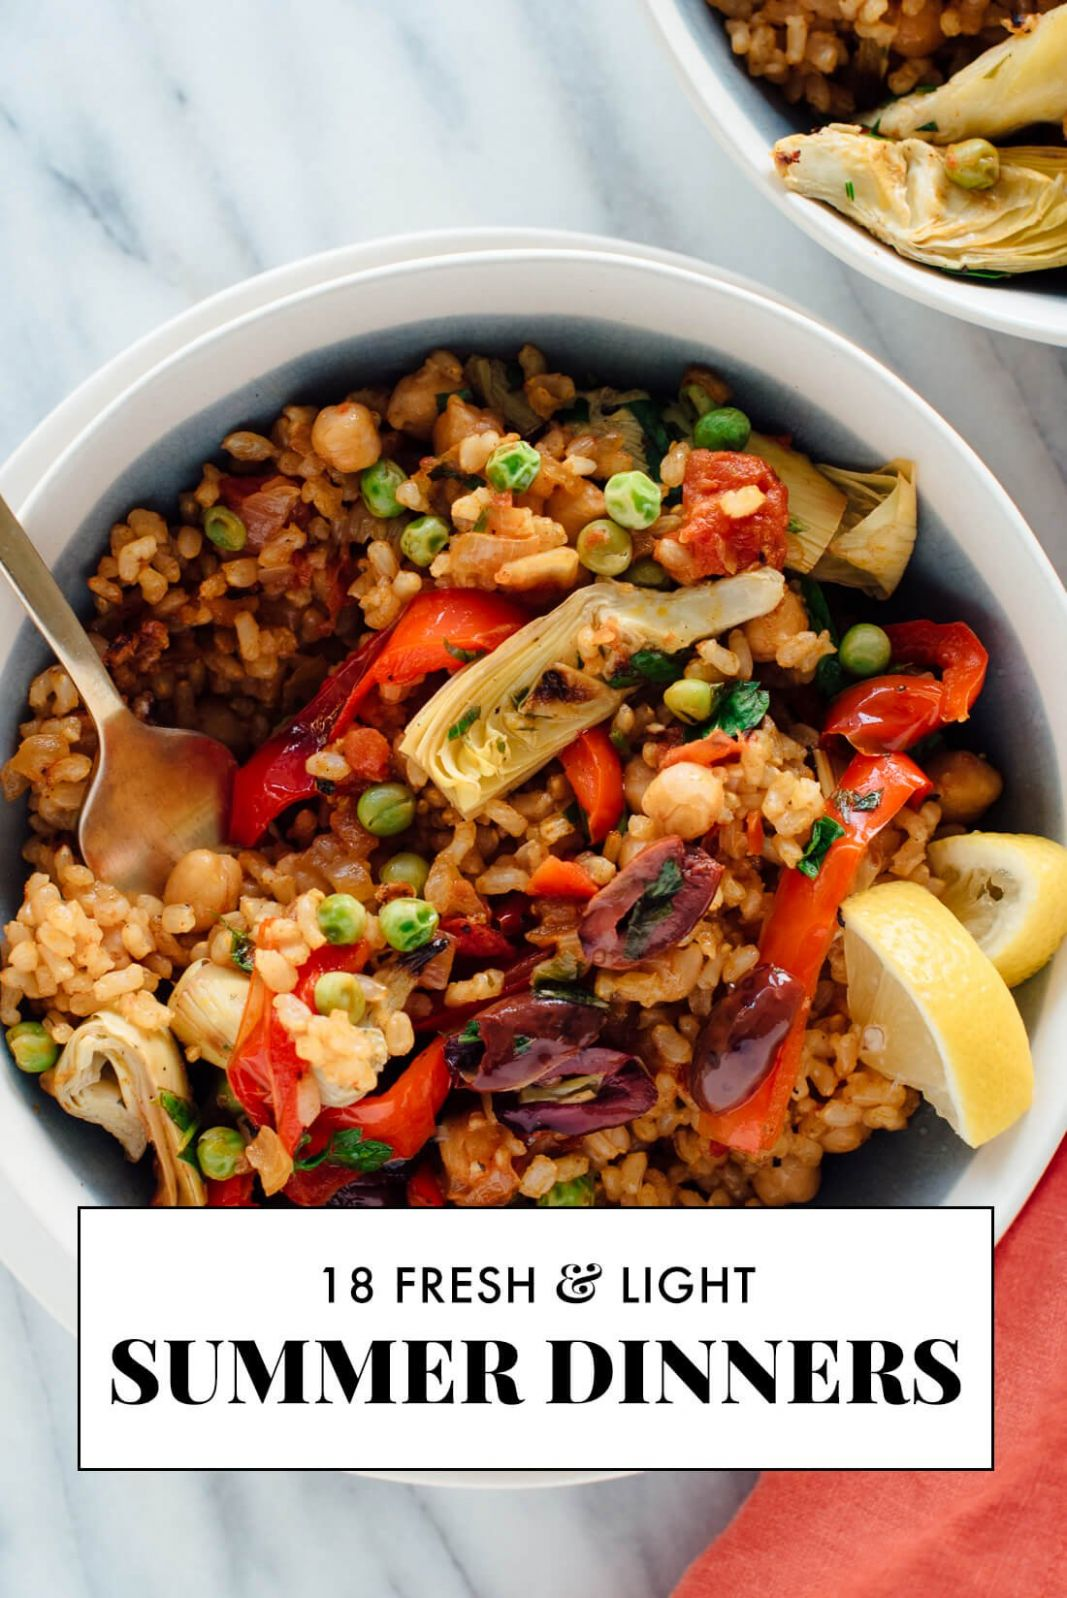 12 Light Summer Dinner Recipes - Cookie and Kate